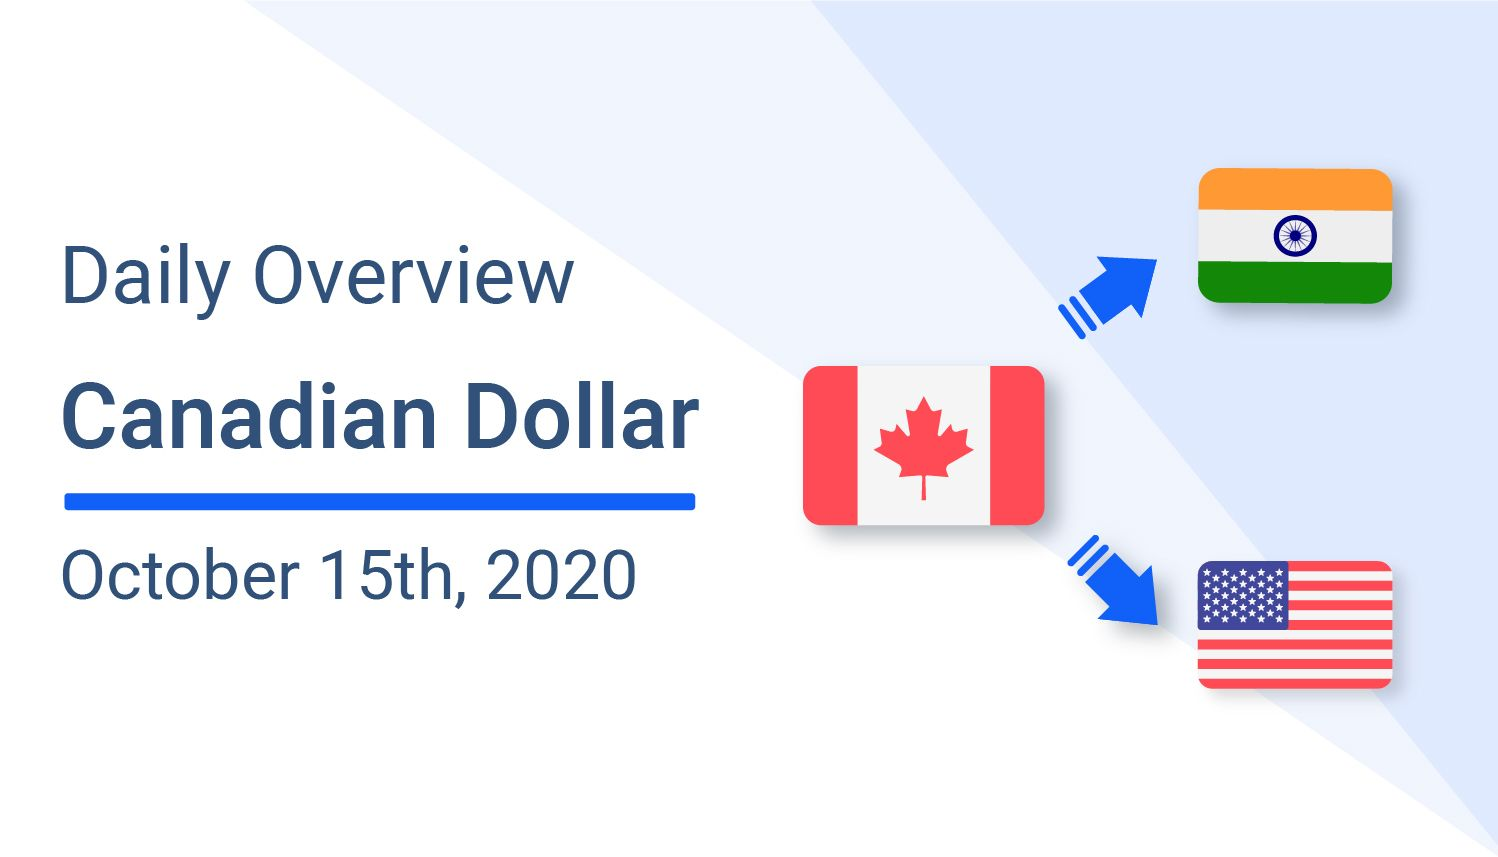 Canadian Dollar (CAD) - US Dollar (USD) - Indian Rupee (INR) Daily Overview: October 15th